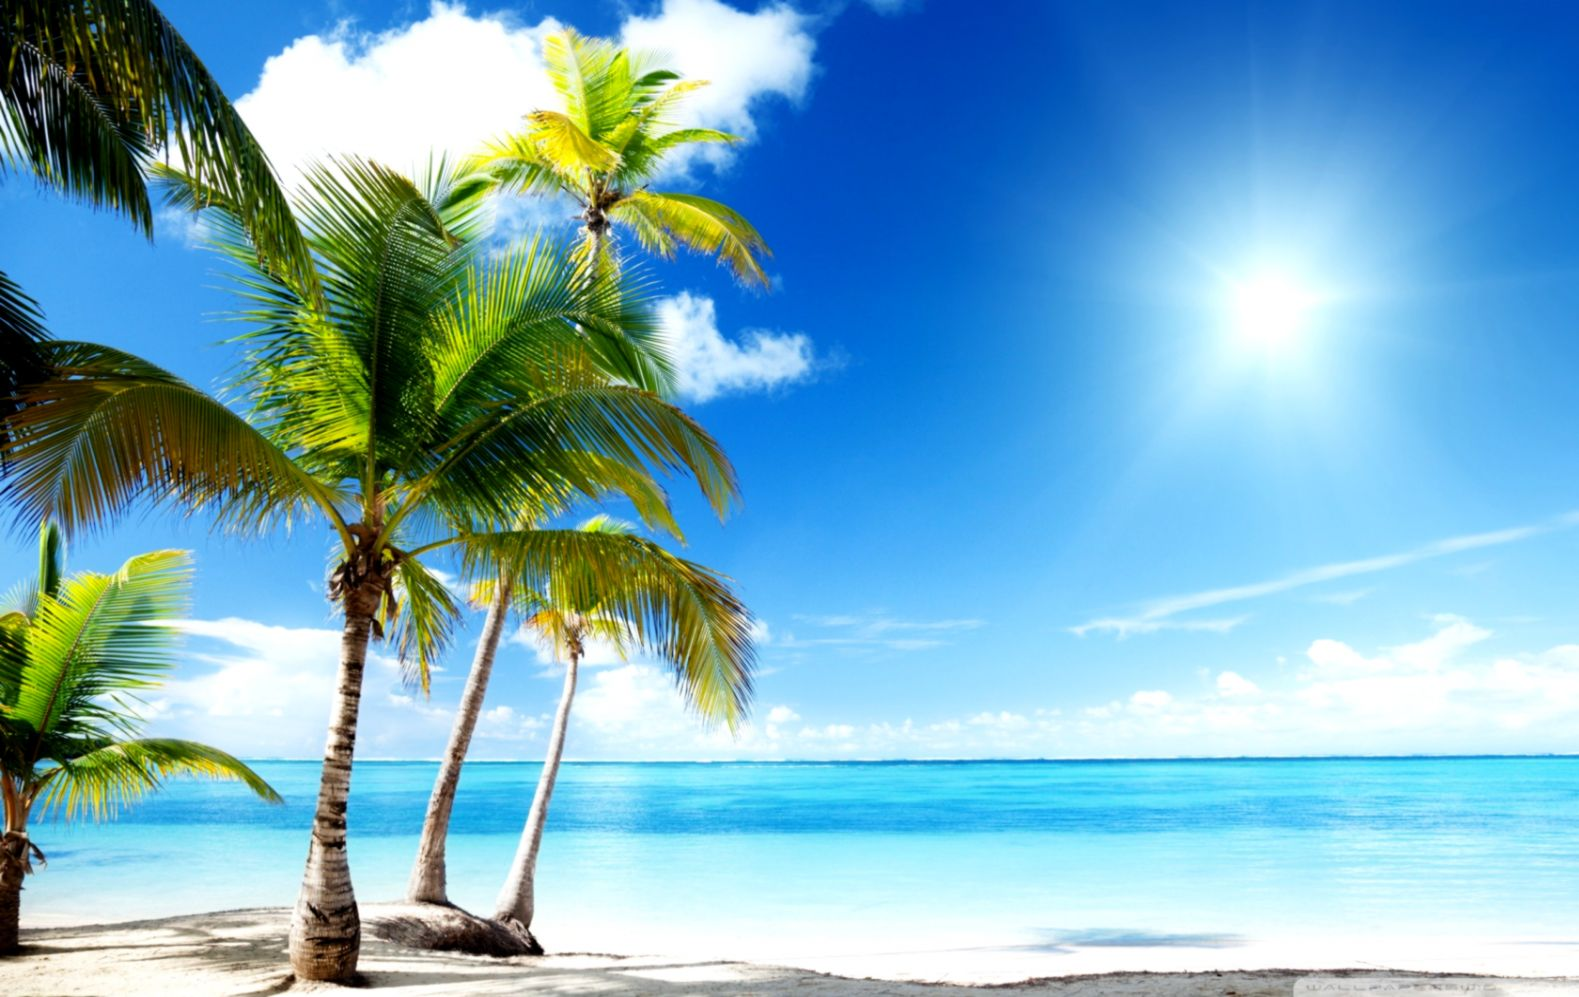 Free Tropical Beach Wallpapers Desktop Decor Di Design